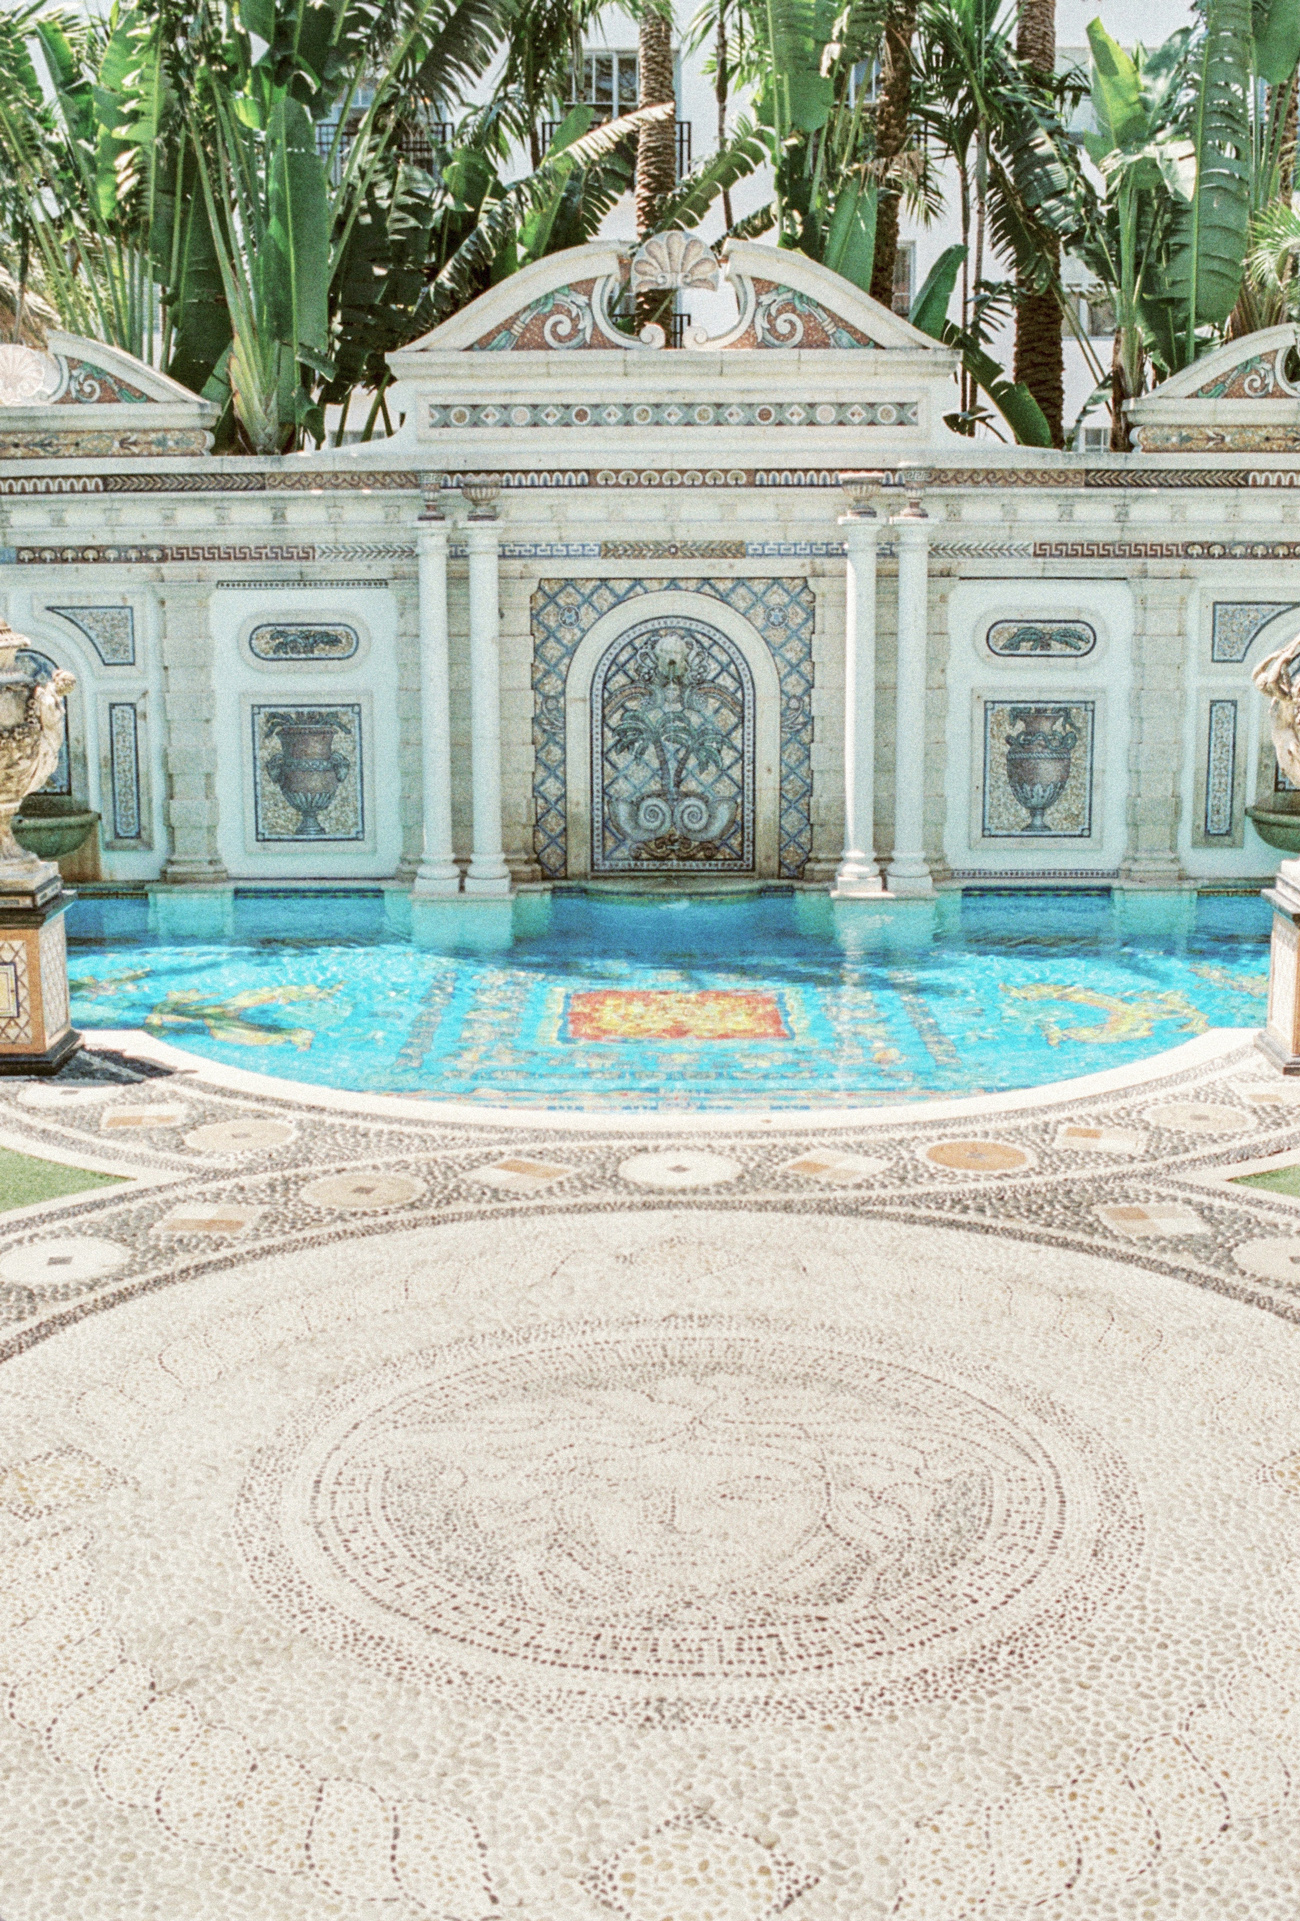 mansion wedding venue outdoor pool with gold tile floor designs